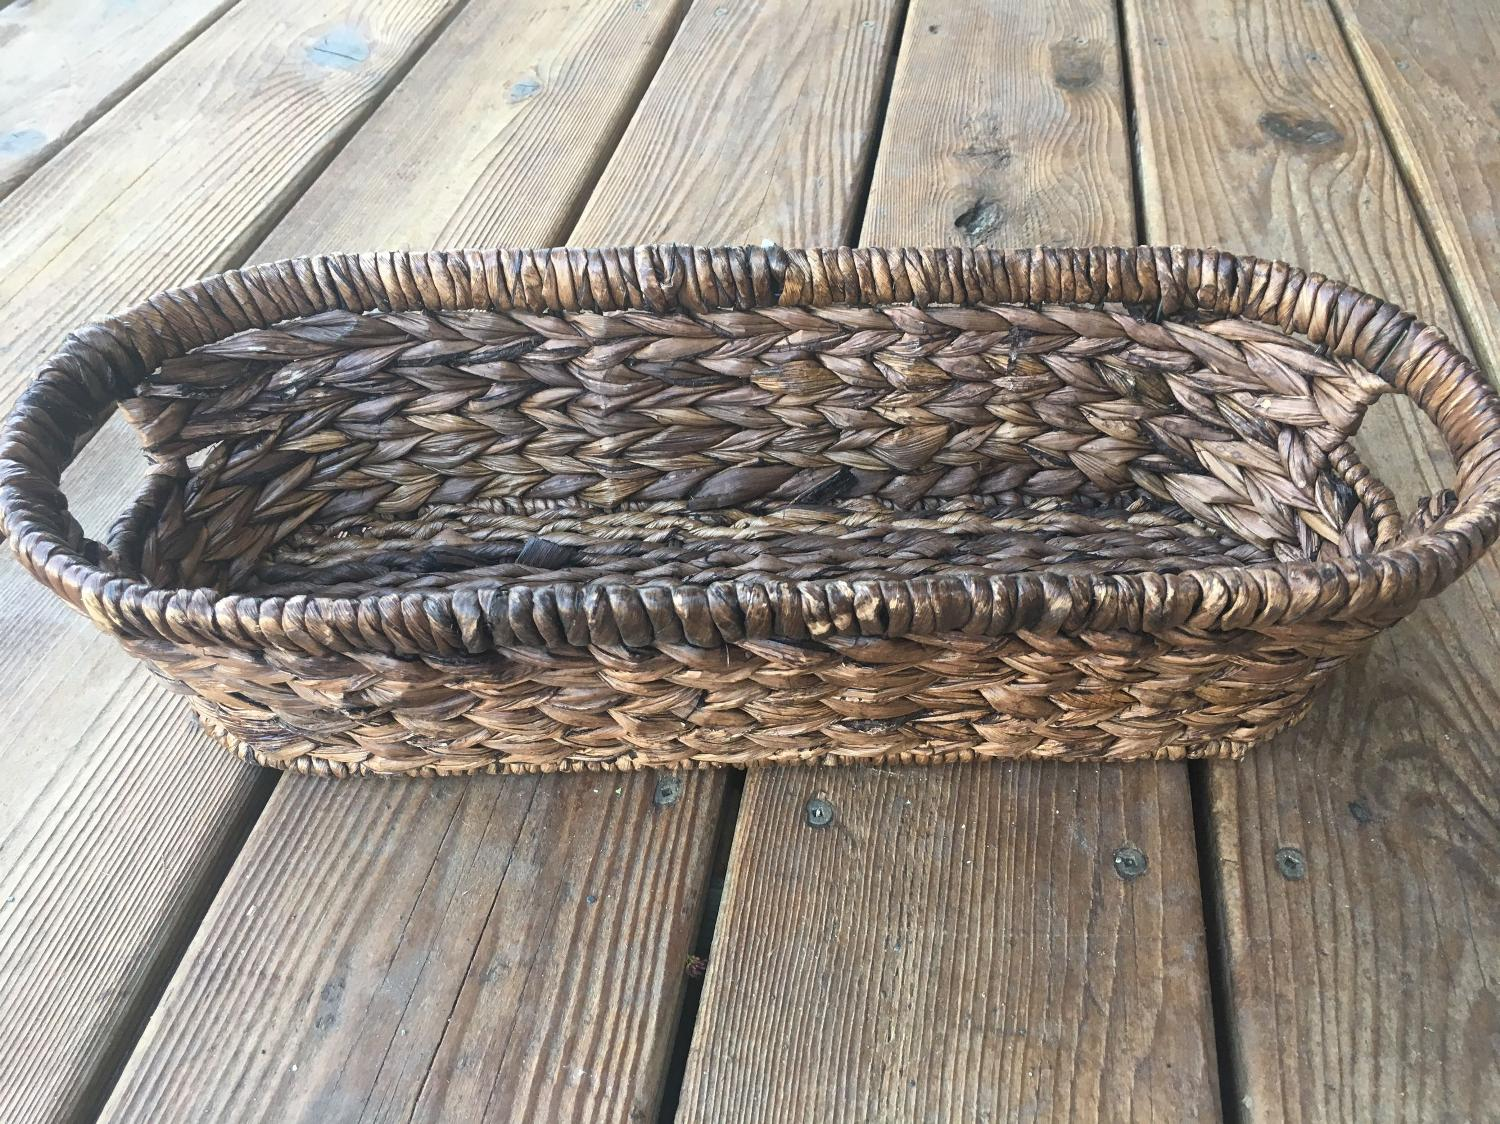 Find More Brown Wicker Basket 16 1 2x7 Depth Is 4 For Sale At Up To 90 Off Appleton Wi